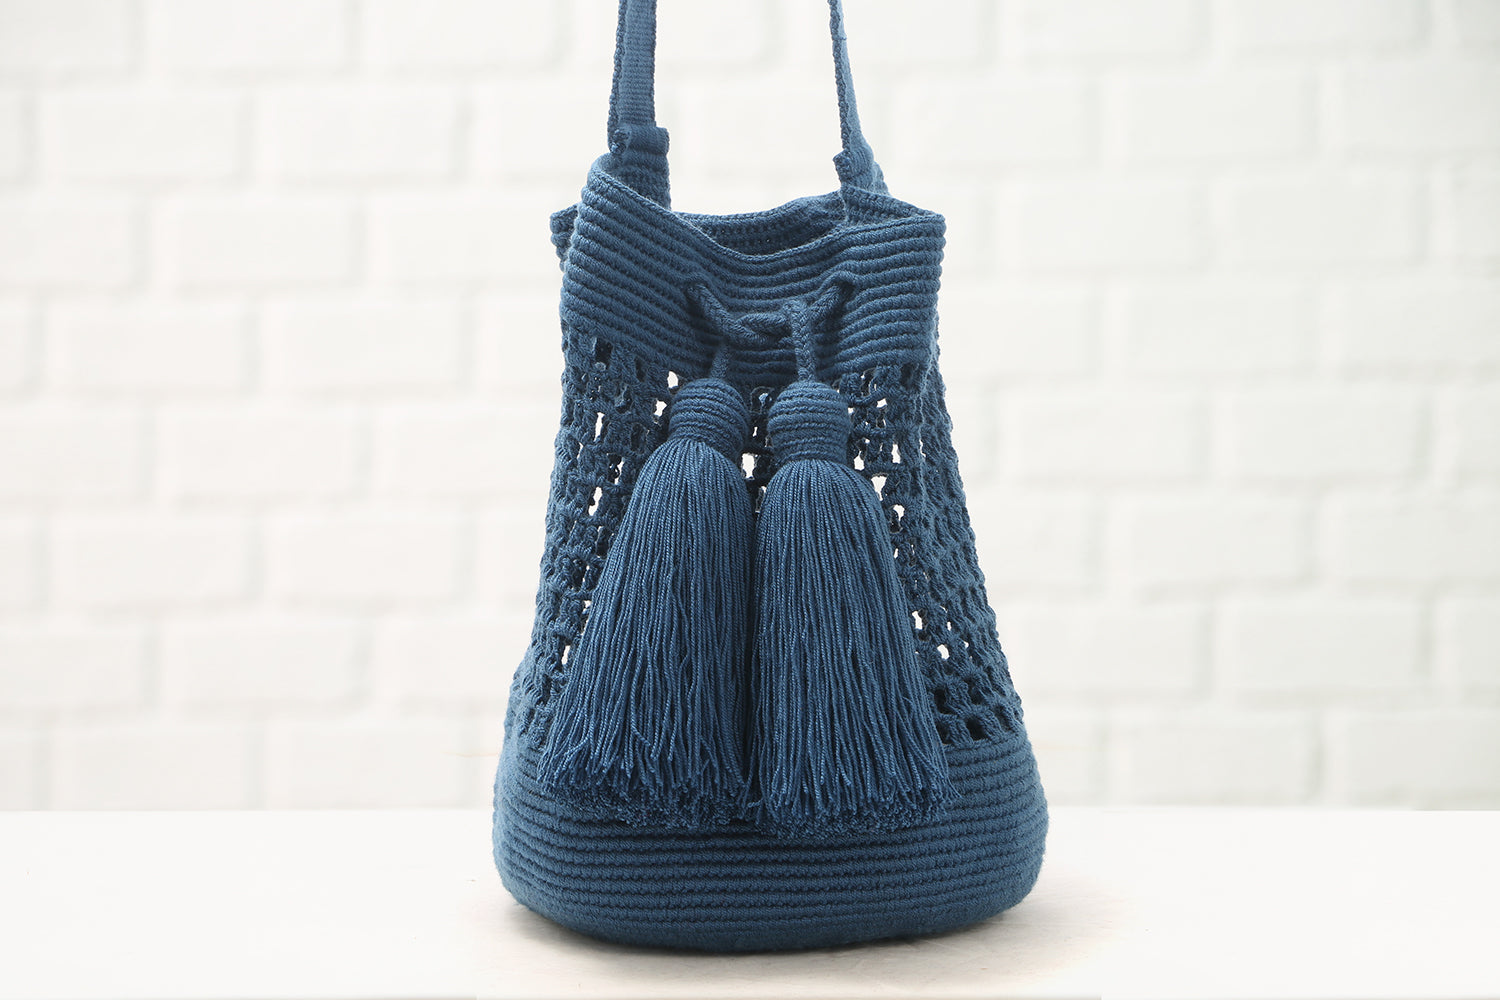 Mona A Net Bag